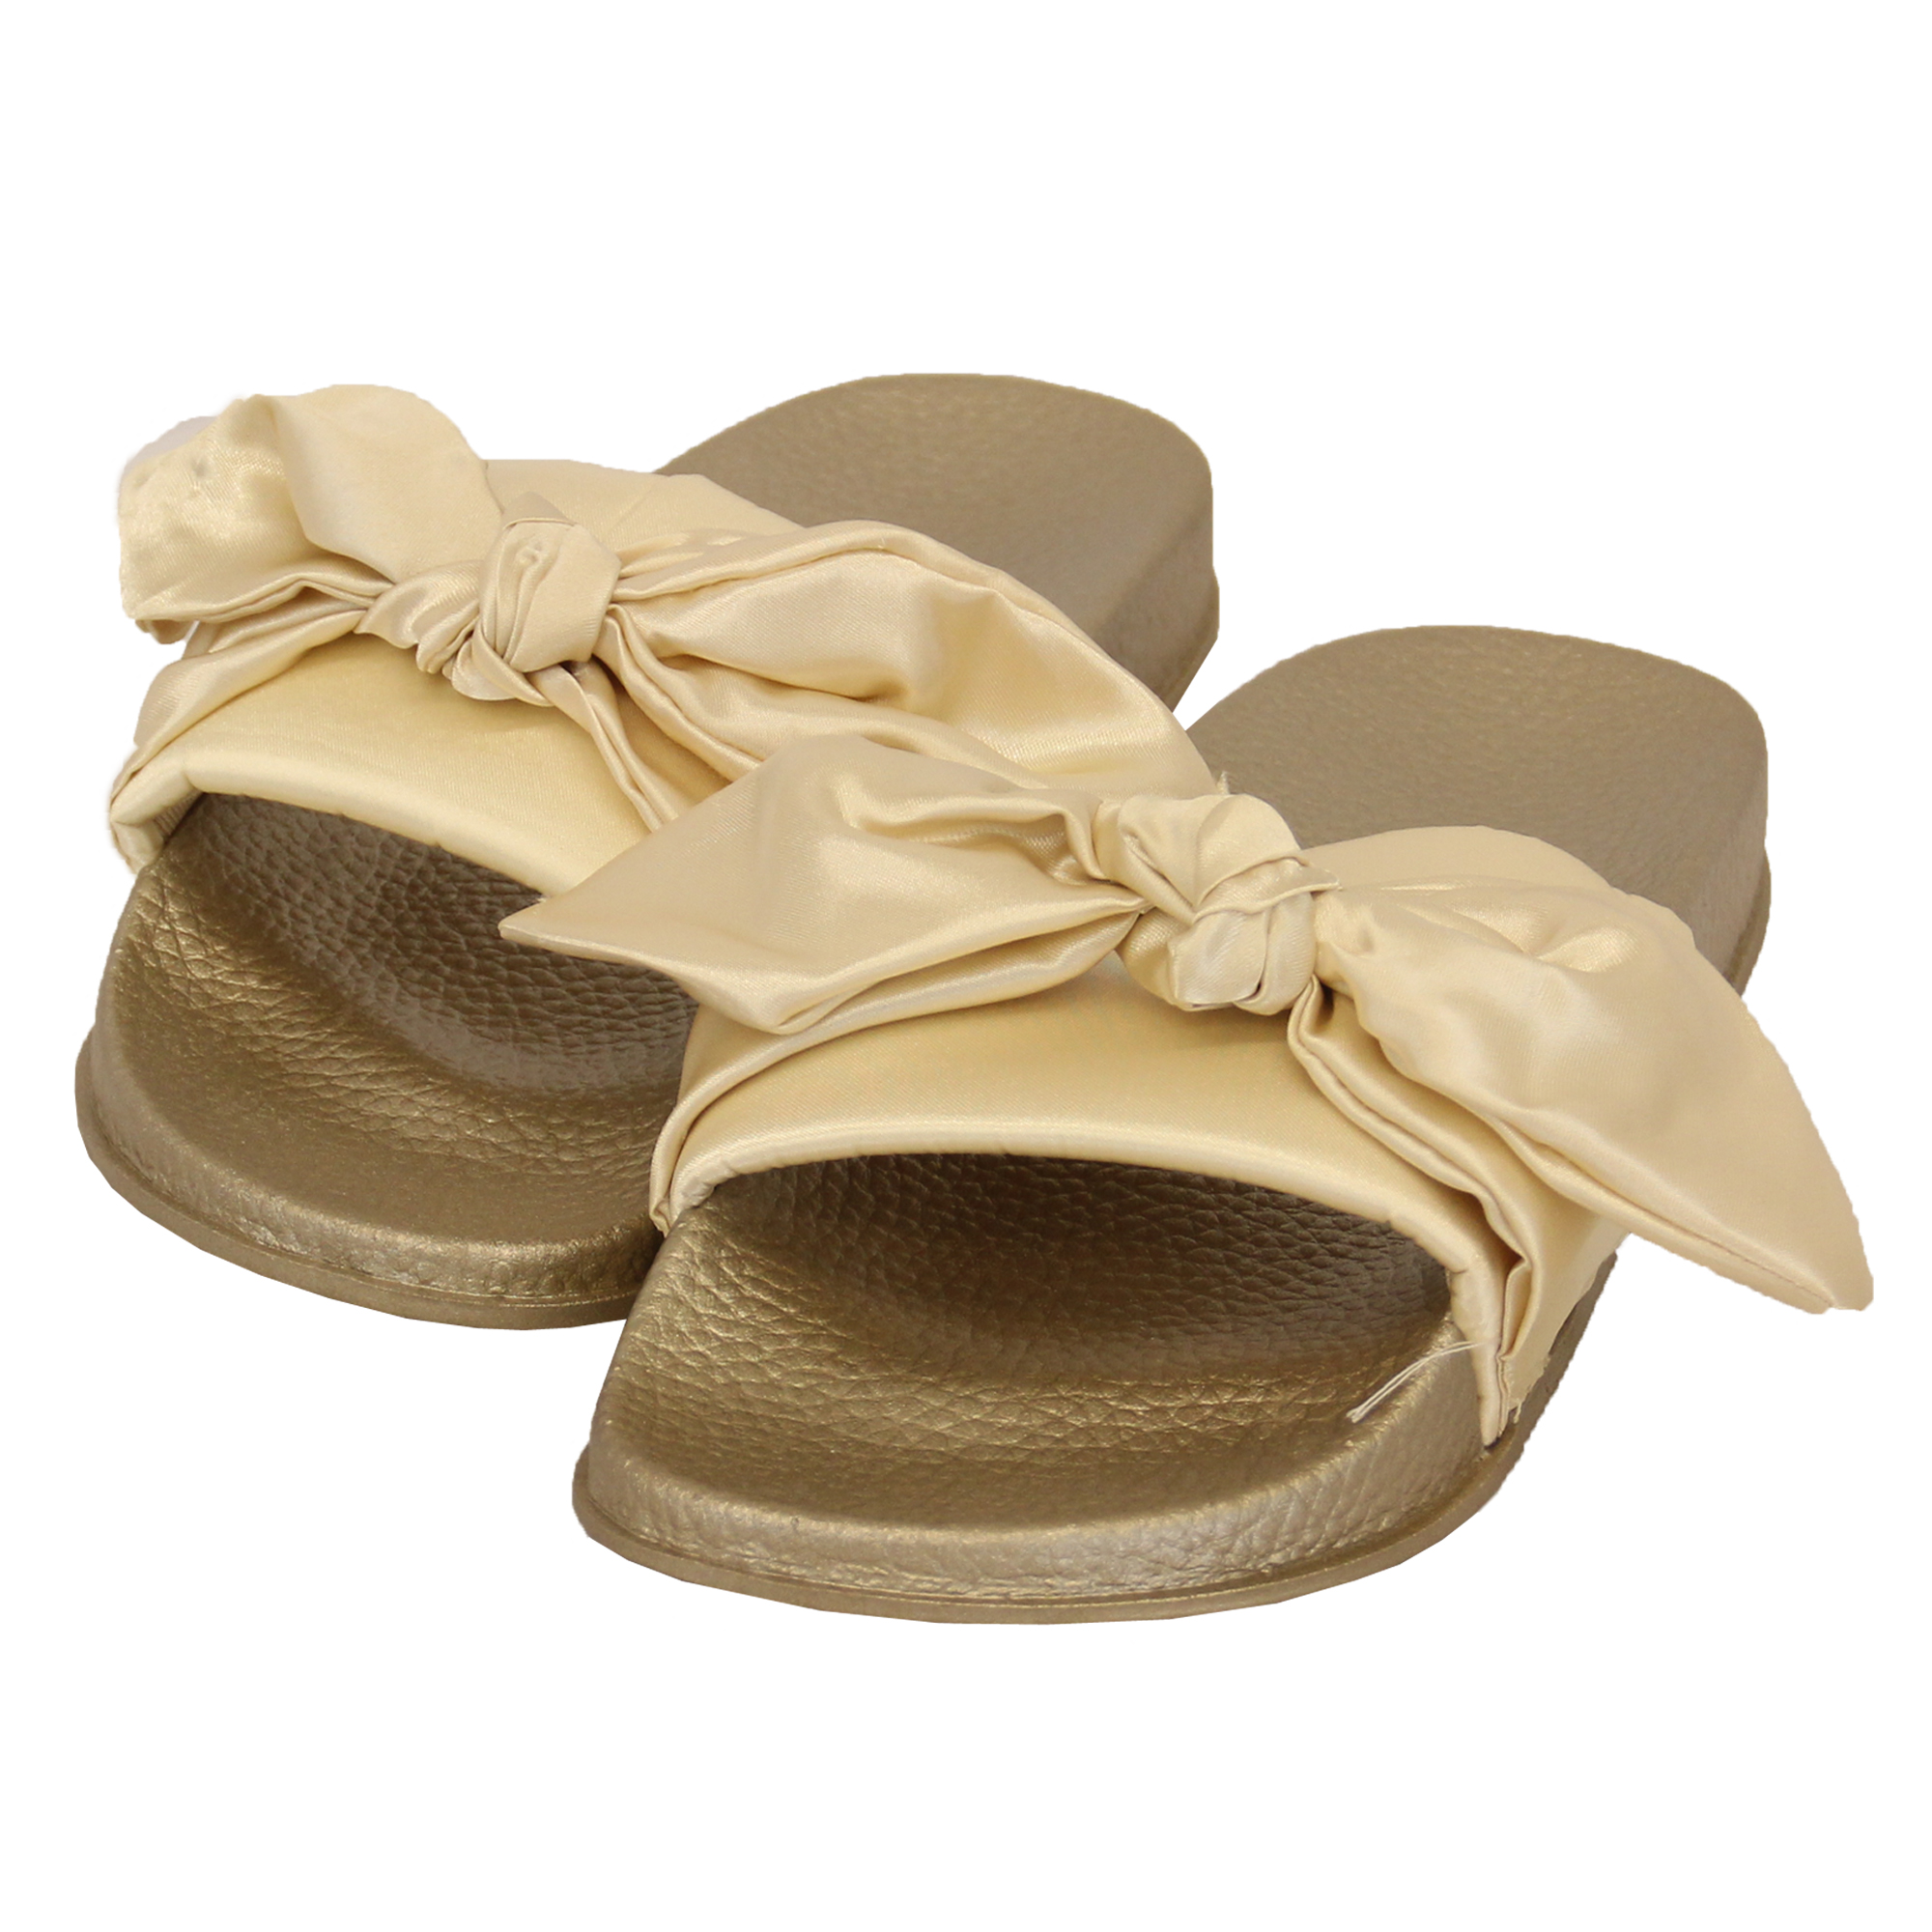 Details about Ladies Slip On Slippers Bow Sliders Women Comfy Rubber Mules Sandals Summer New